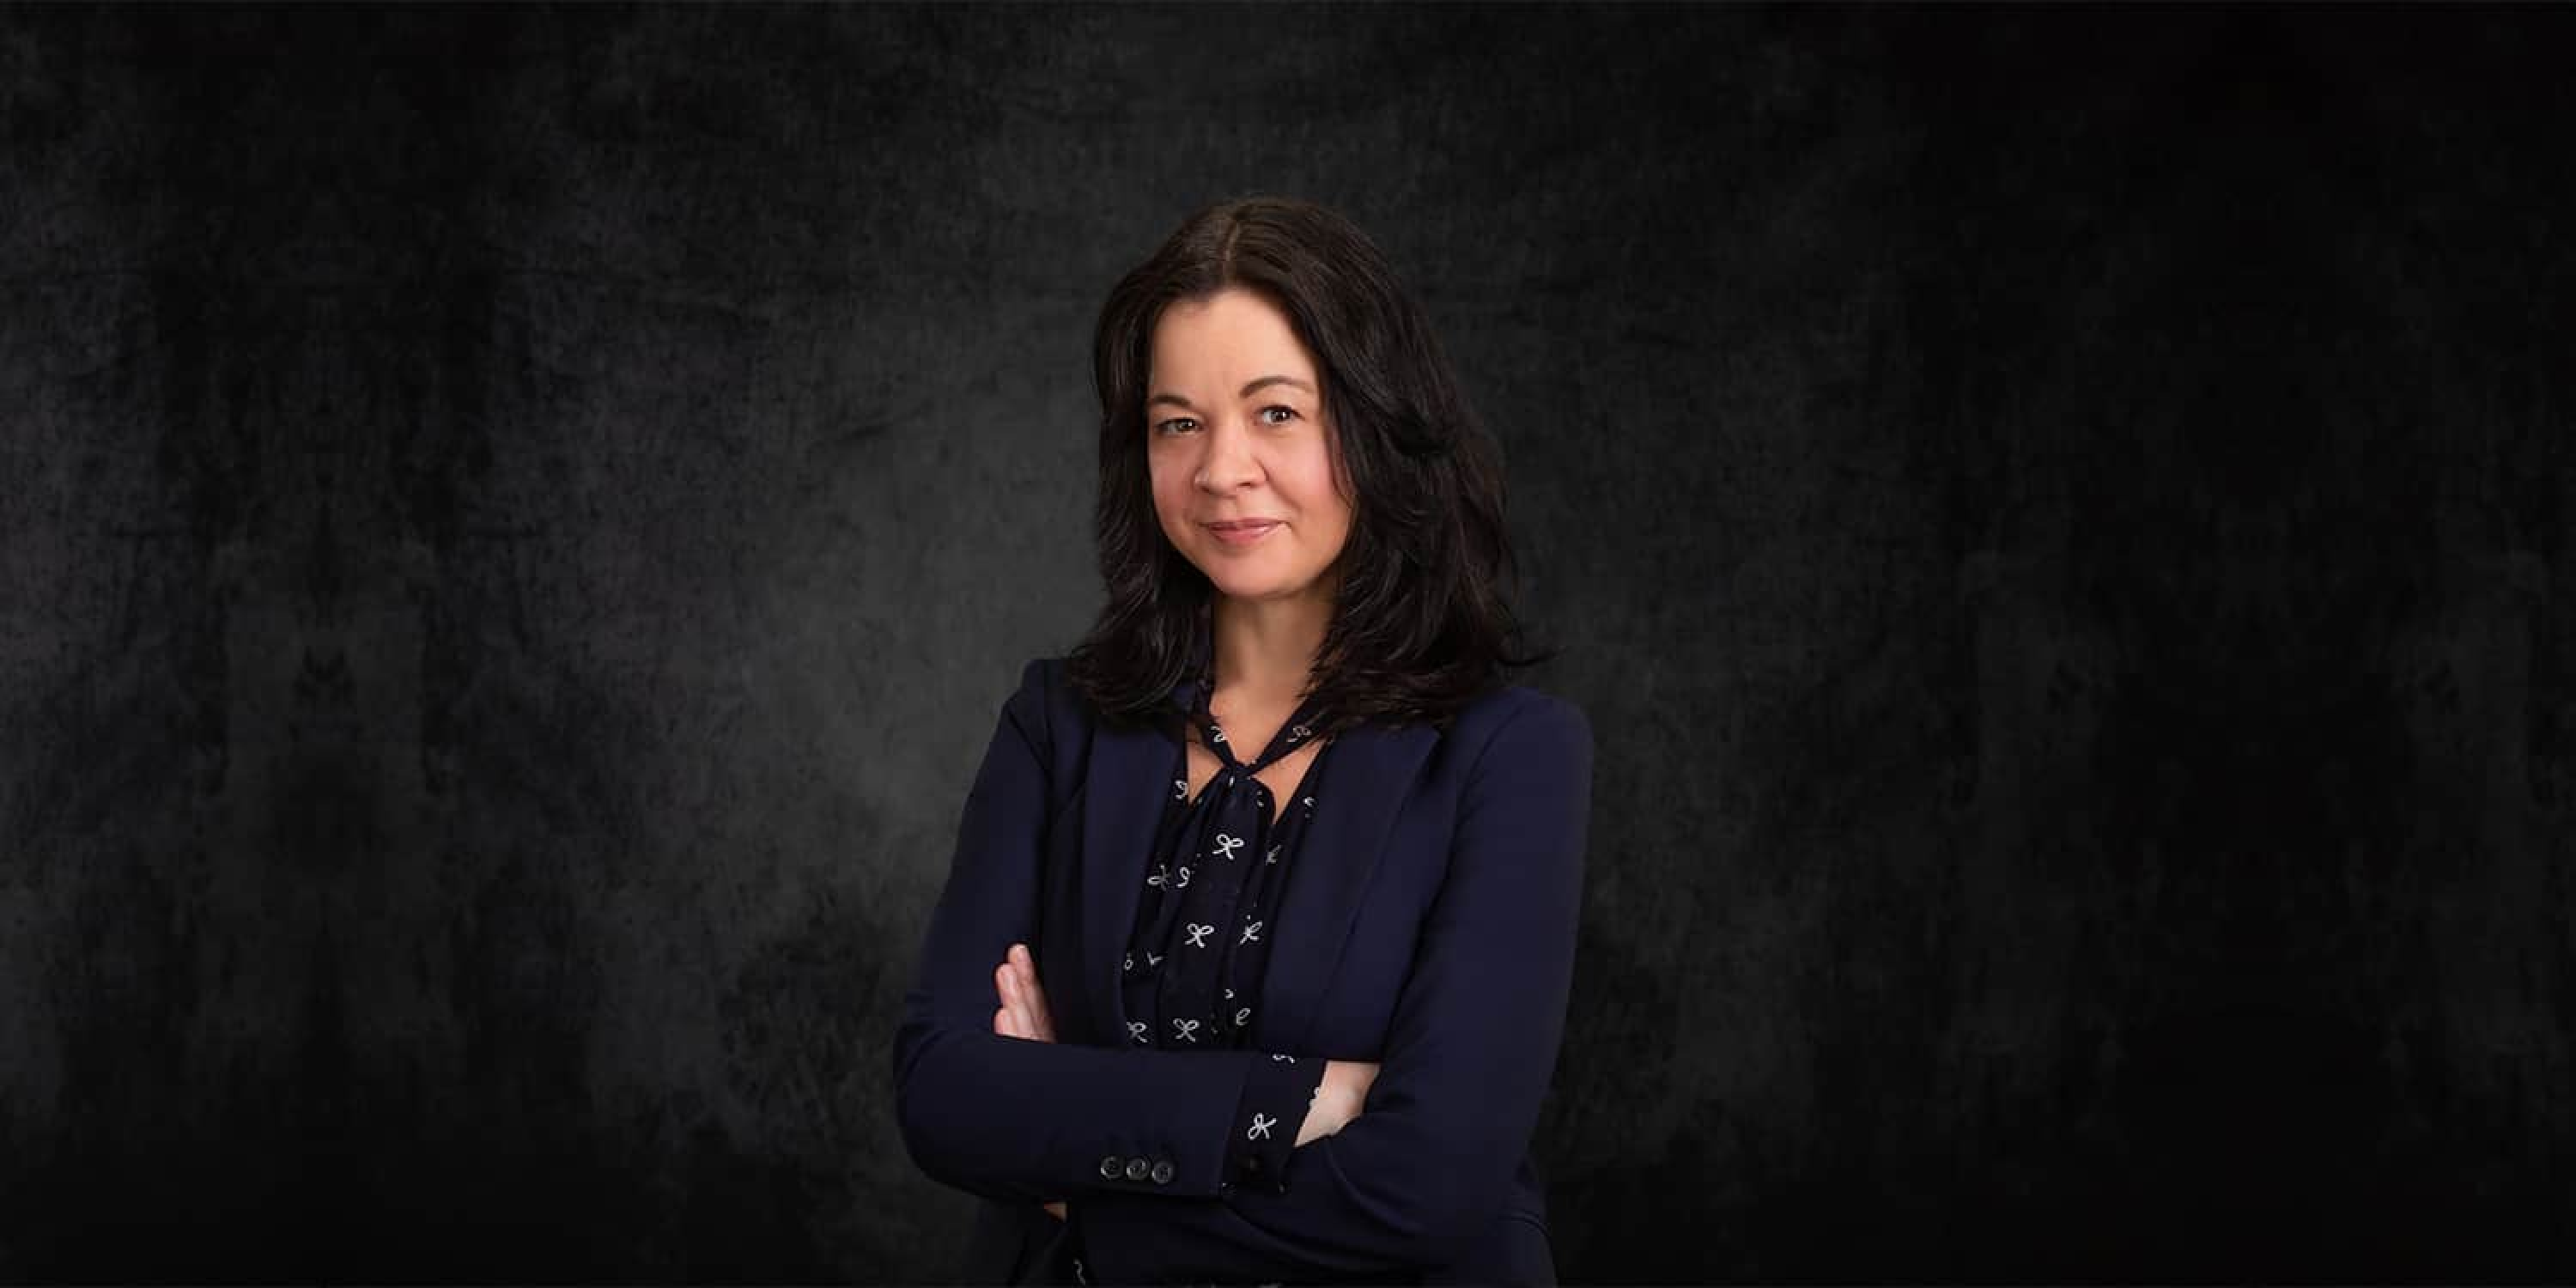 Image of Chapman Law Group Parrallegal Shelly Ambrose.